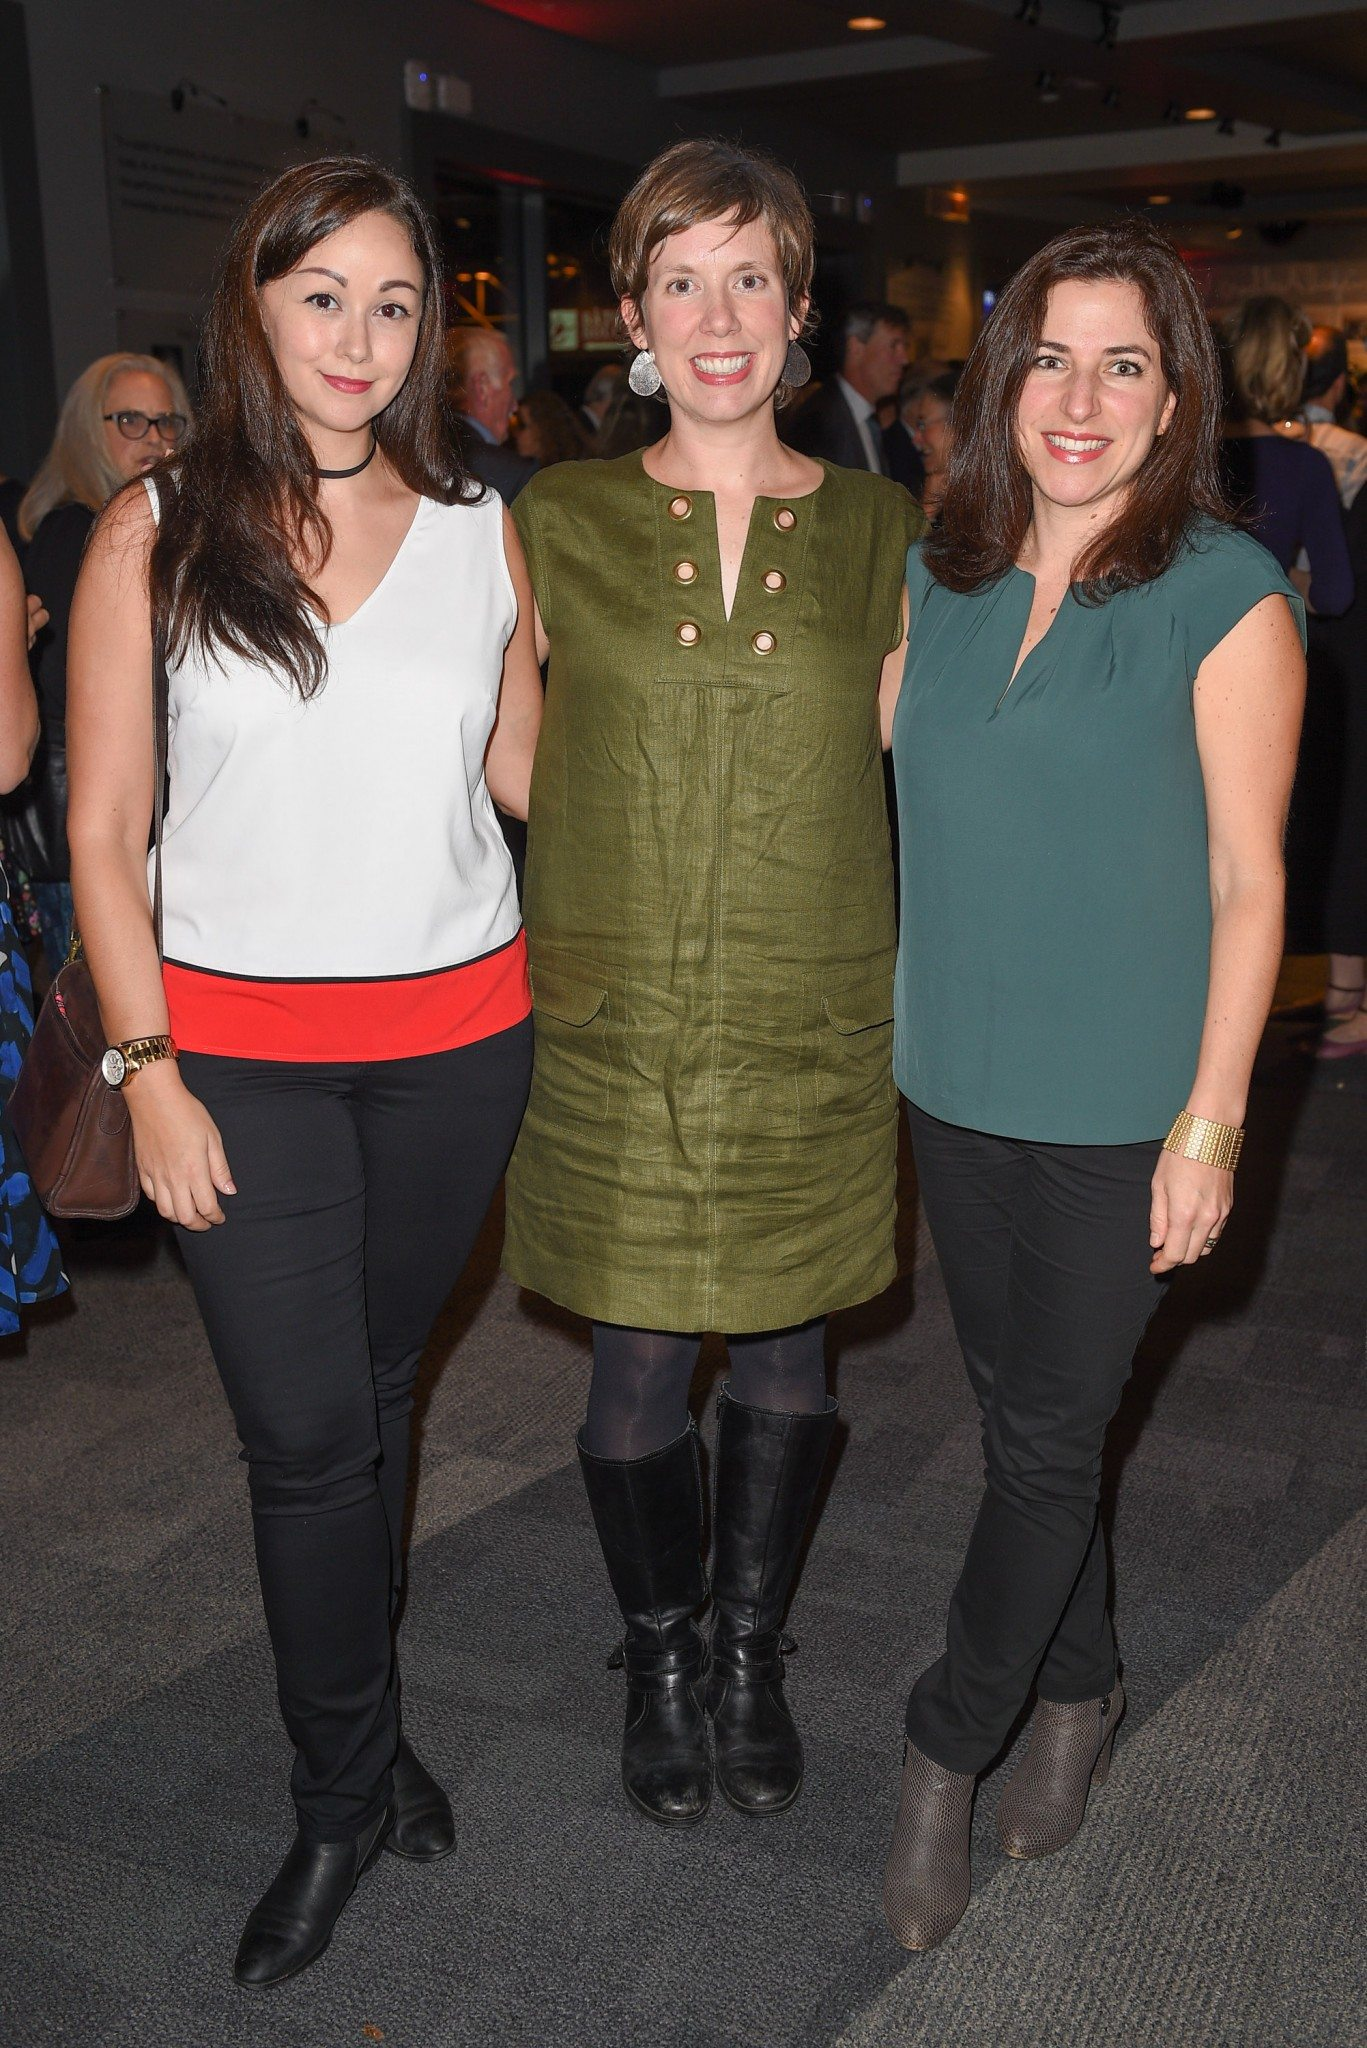 Grace O'Connell, Trena White, and Jesse Finkelstein (Photo: George Pimentel Photography)